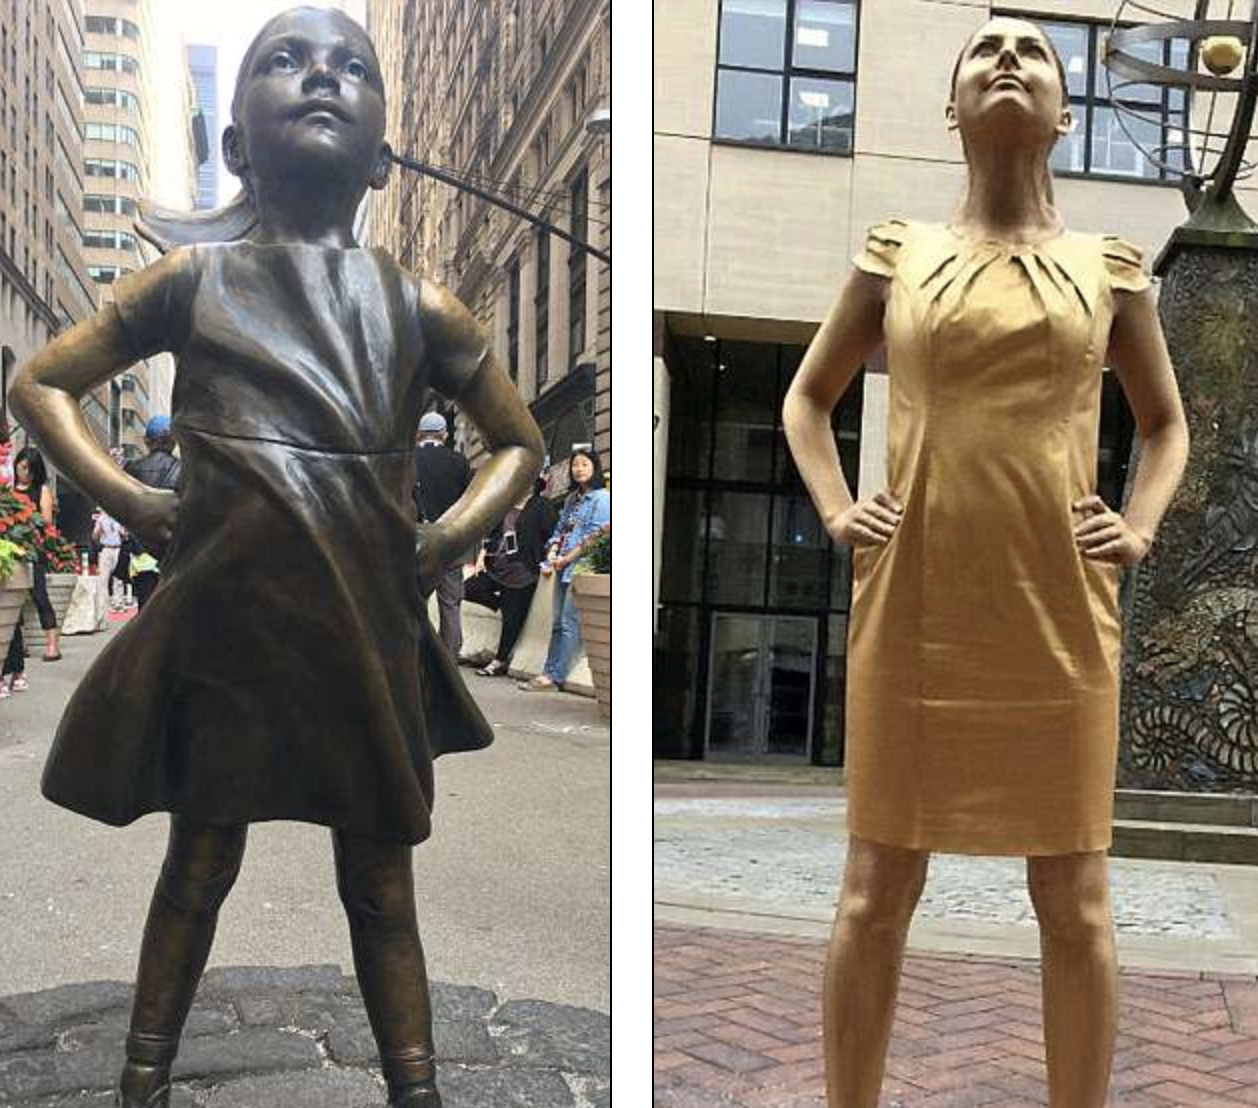 the fearless girl statue and a potential intern posing the same way